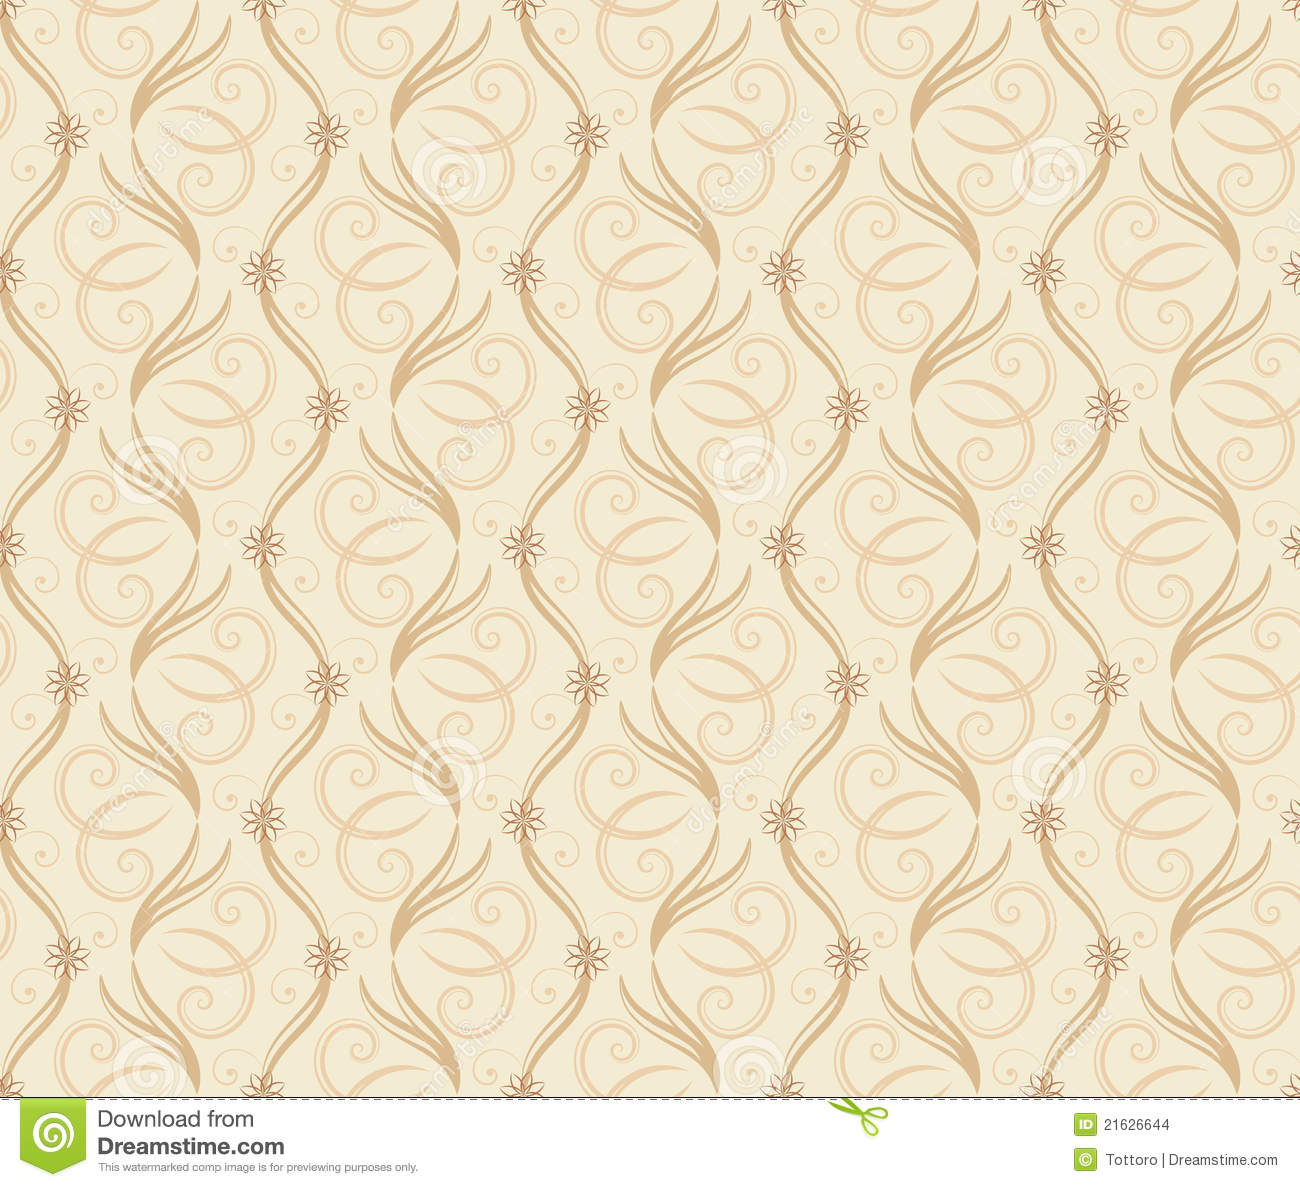 Kitchen Wall Tile Ideas Designs Wallpaper Seamless Texture Stock Vector Illustration Of